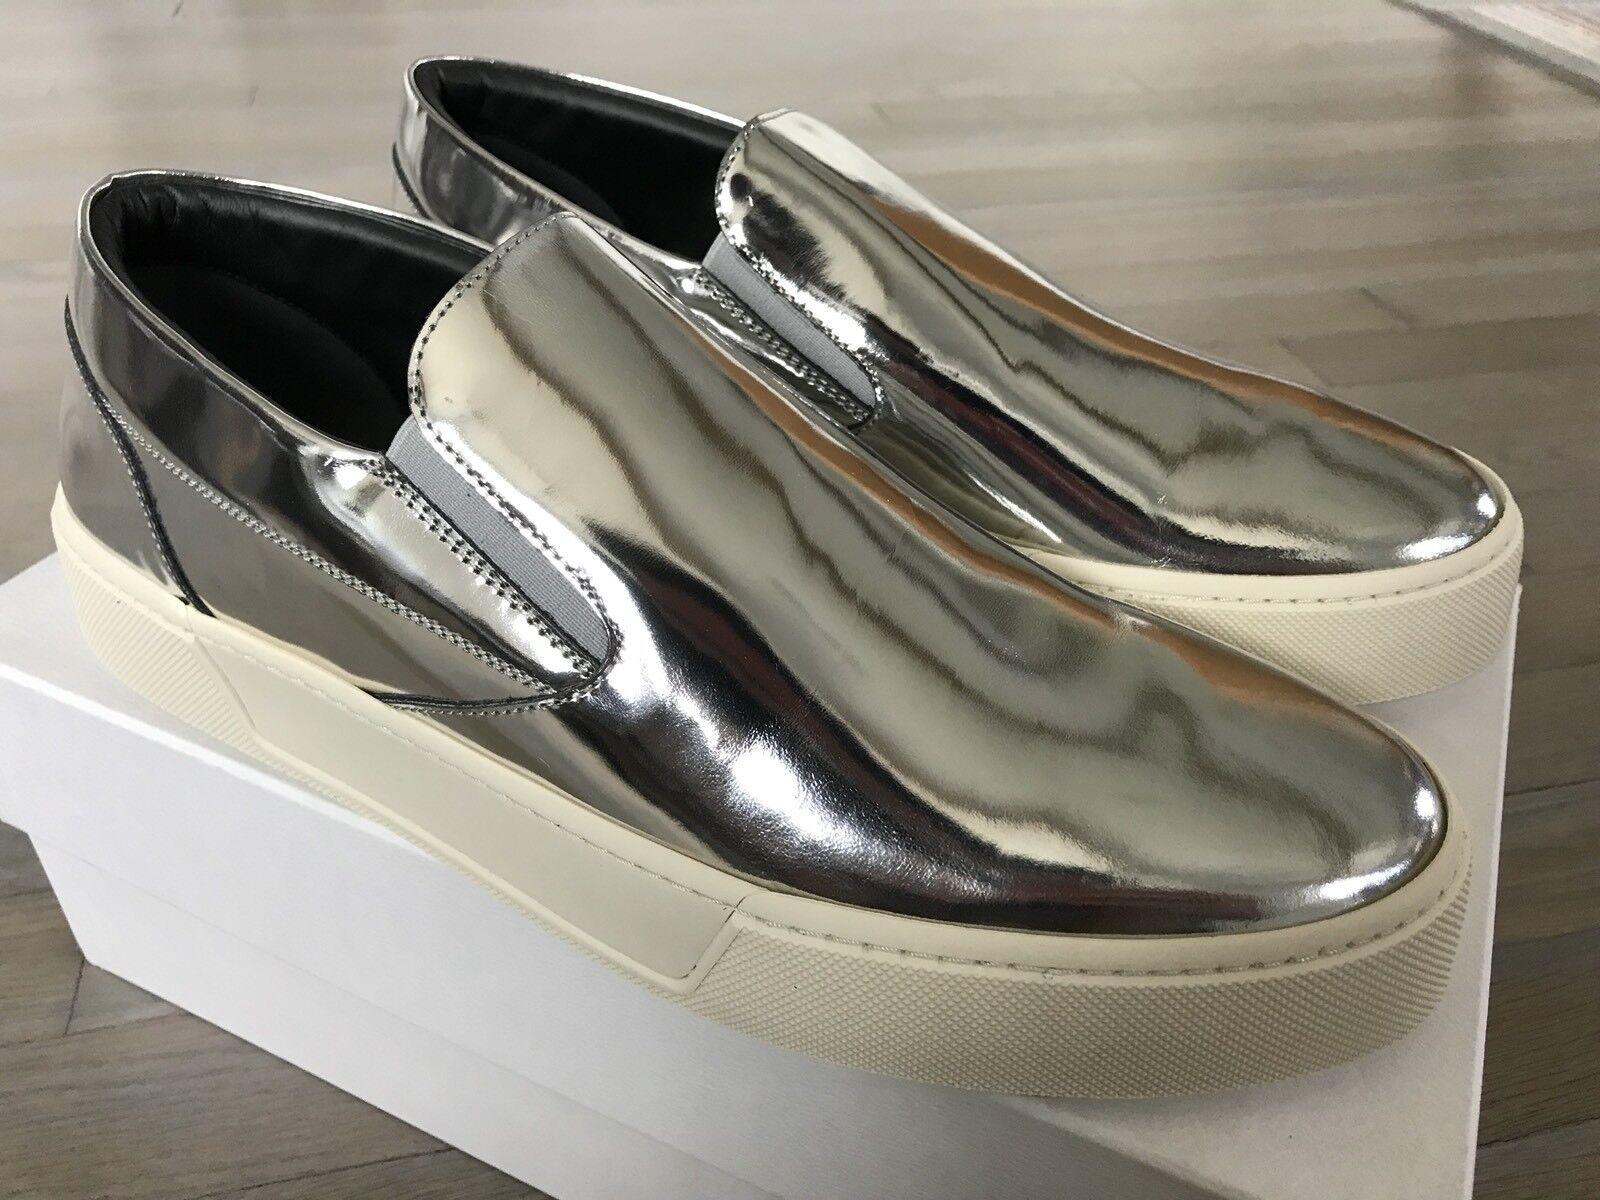 615$ Balenciaga Silver Leather Slip Ons Size US 14, Made in Italy